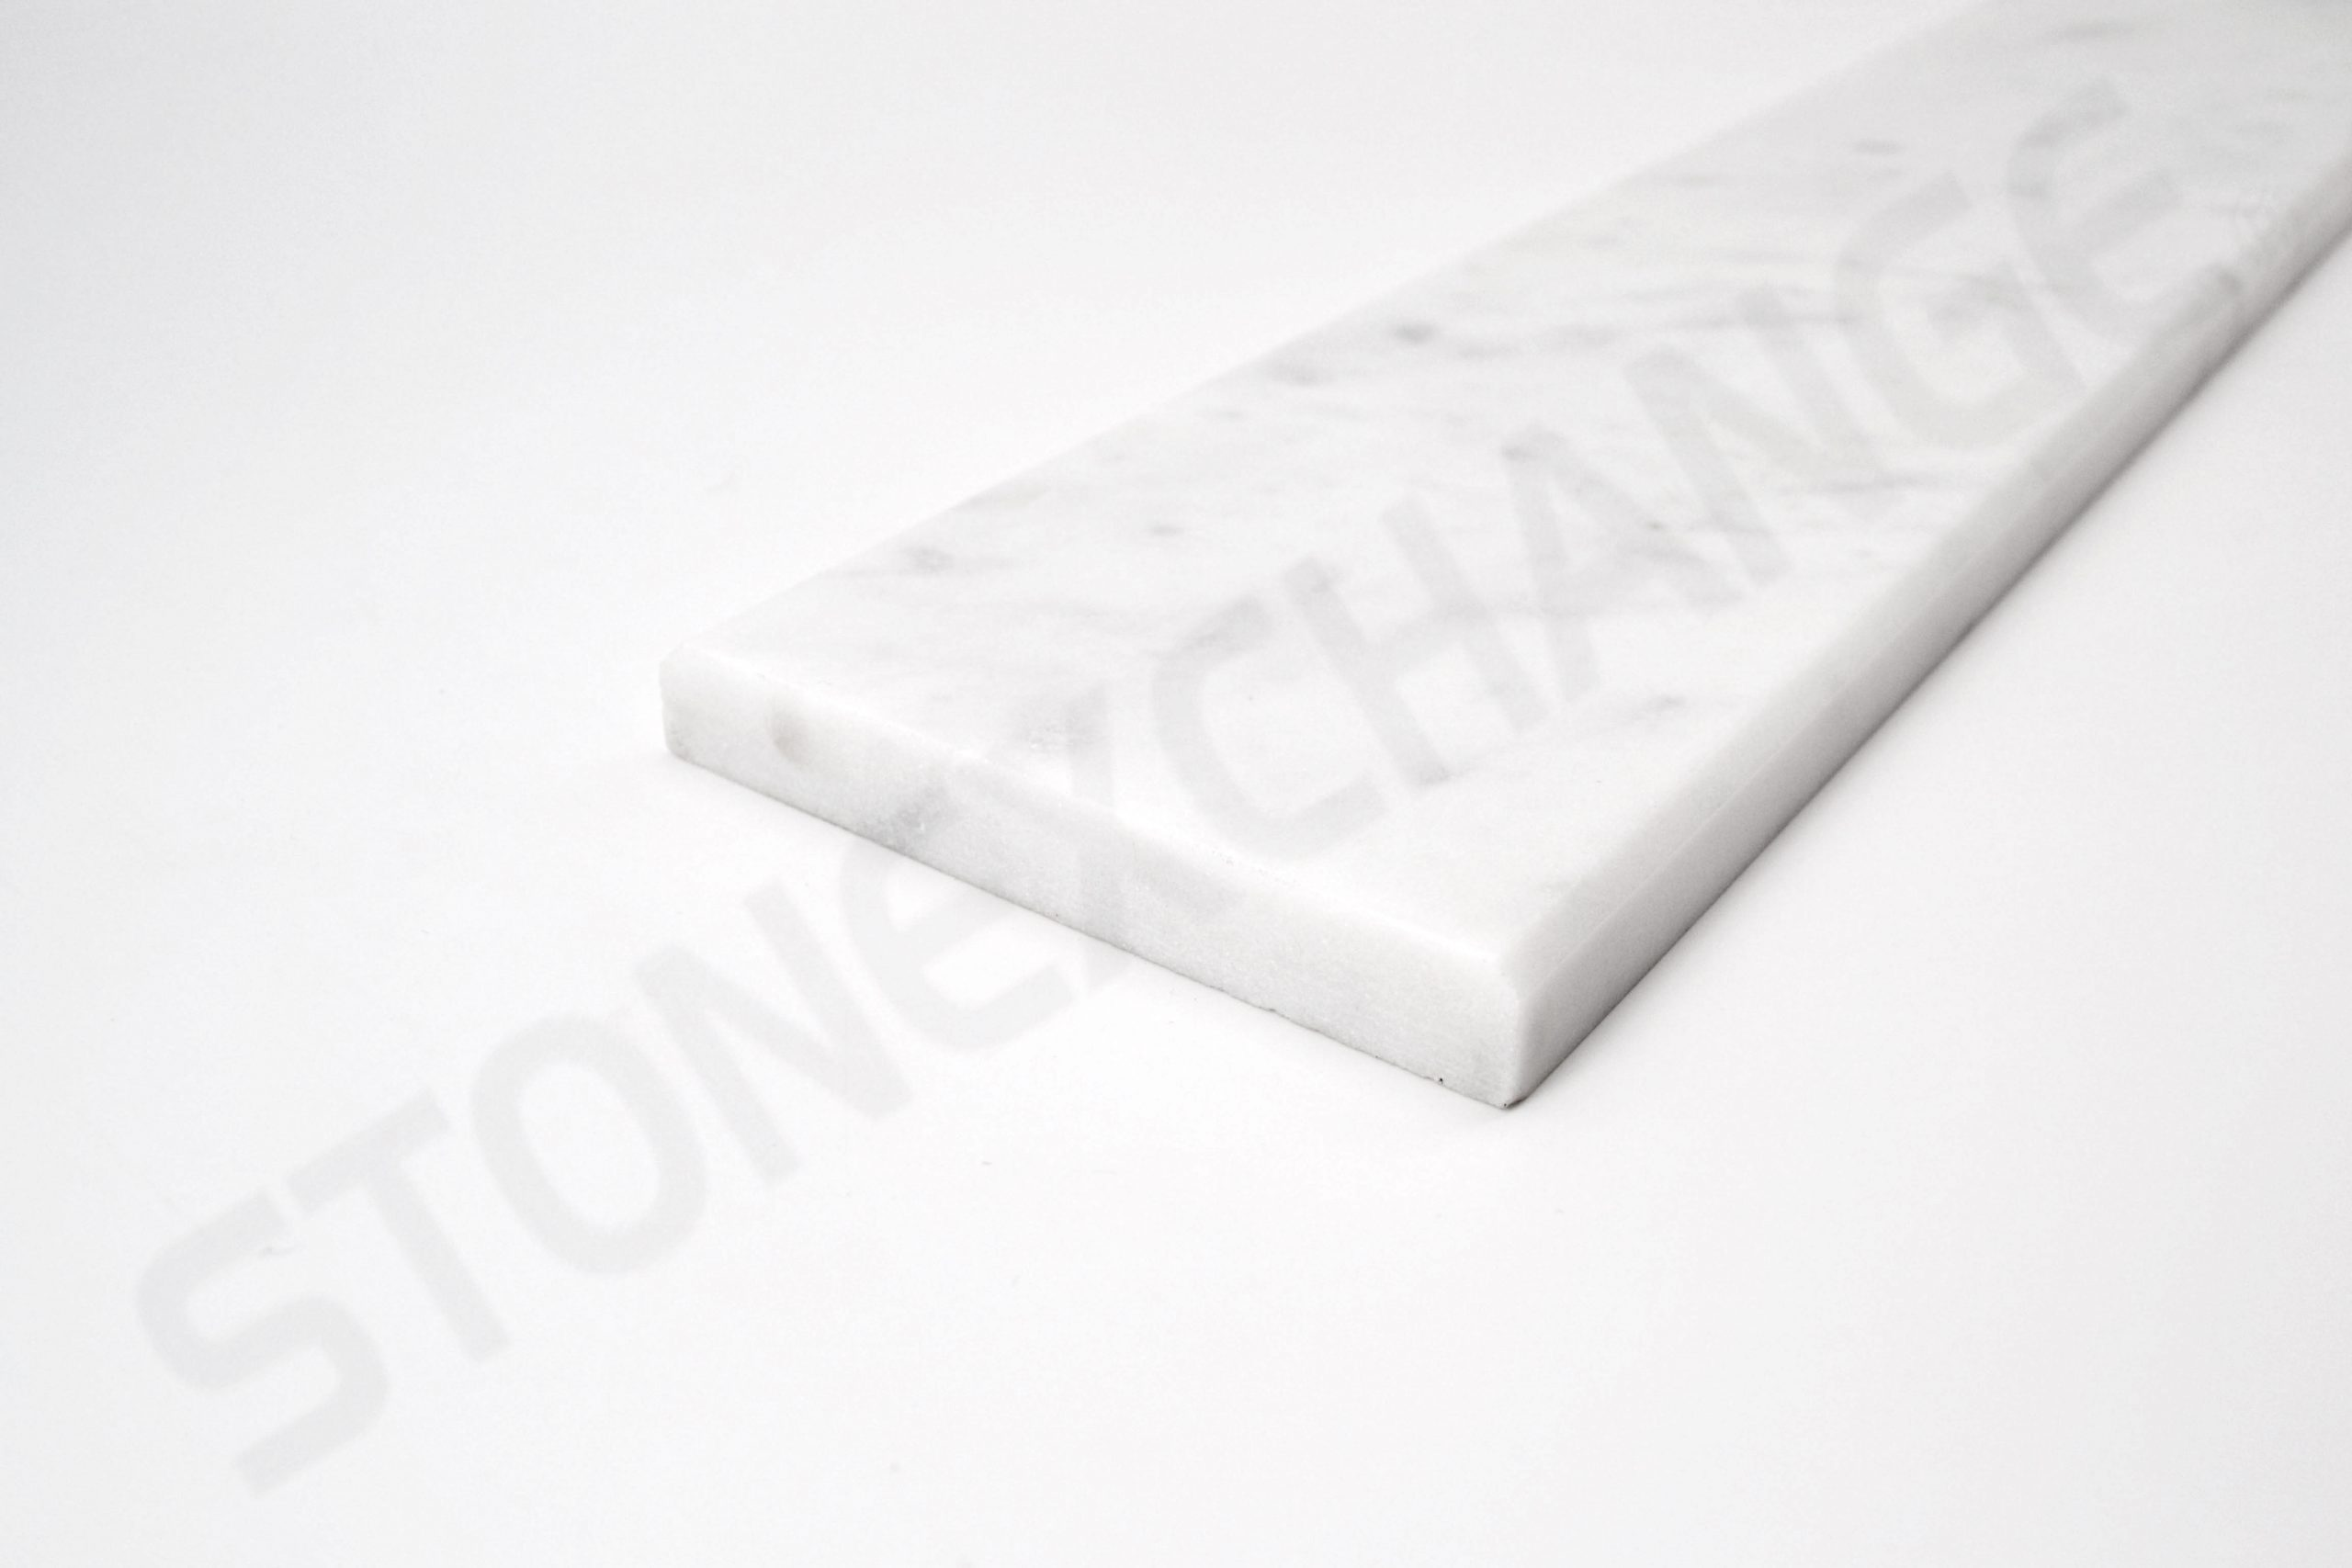 White Carrara Standard Double Bevel Threshold 4x36 Close up